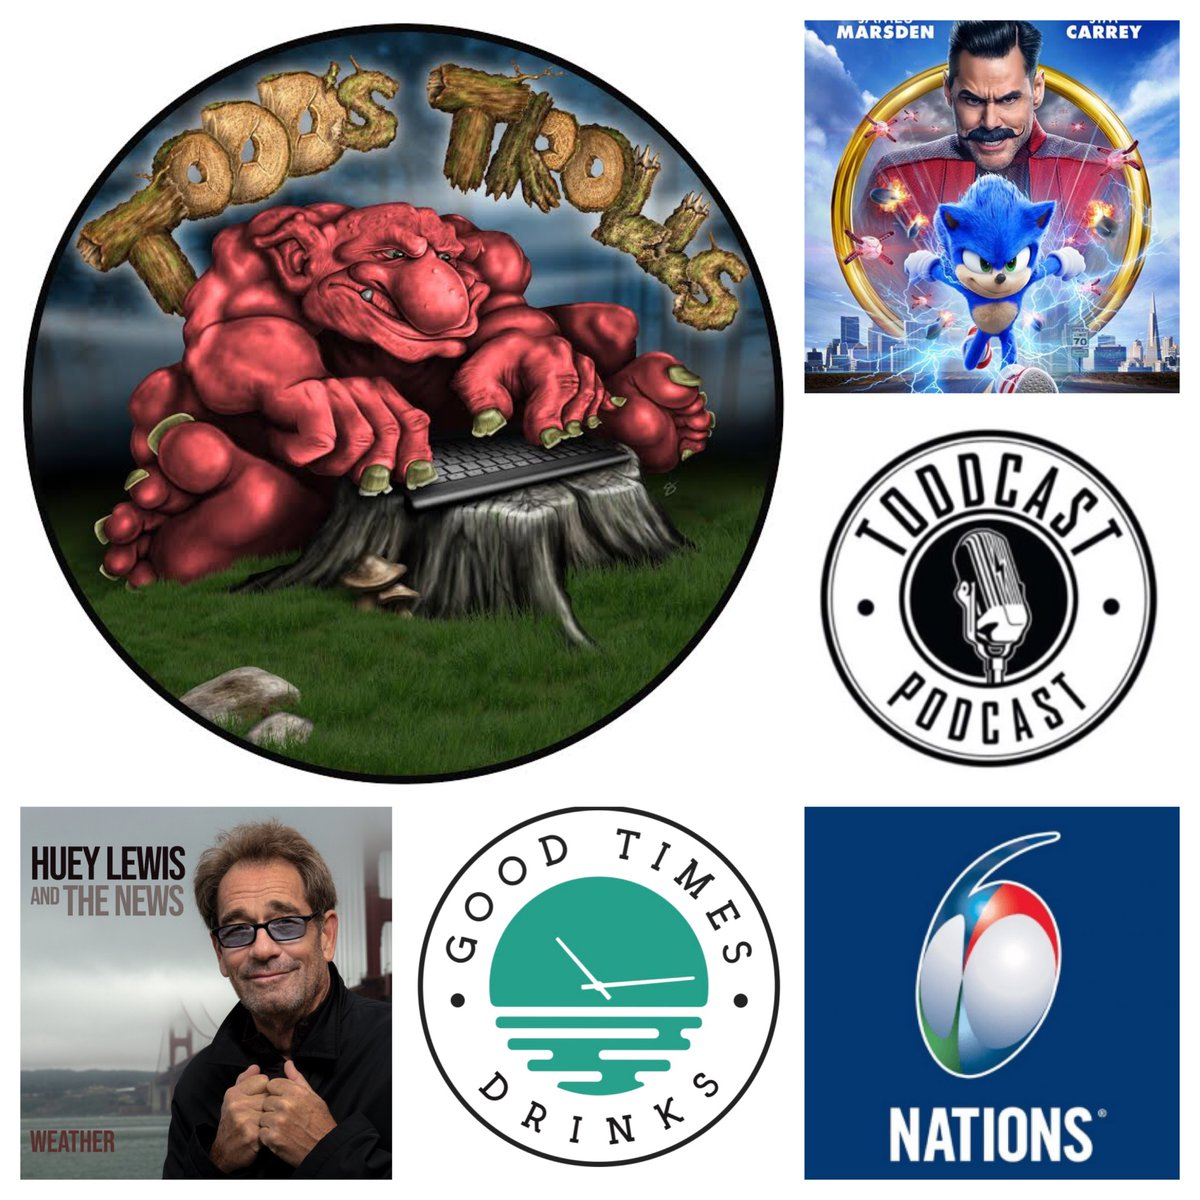 """It's everywhere. The chirping. In the latest """"Todd's Trolls"""" #HueyLewisAndTheNews, #SonicTheHedgehogMovie & #SixNationsRugby take online heat. http://ow.ly/KpXH30qgbS6* Powered by @DrinkGoodTimes - Putting the GT's back in the G & T!"""